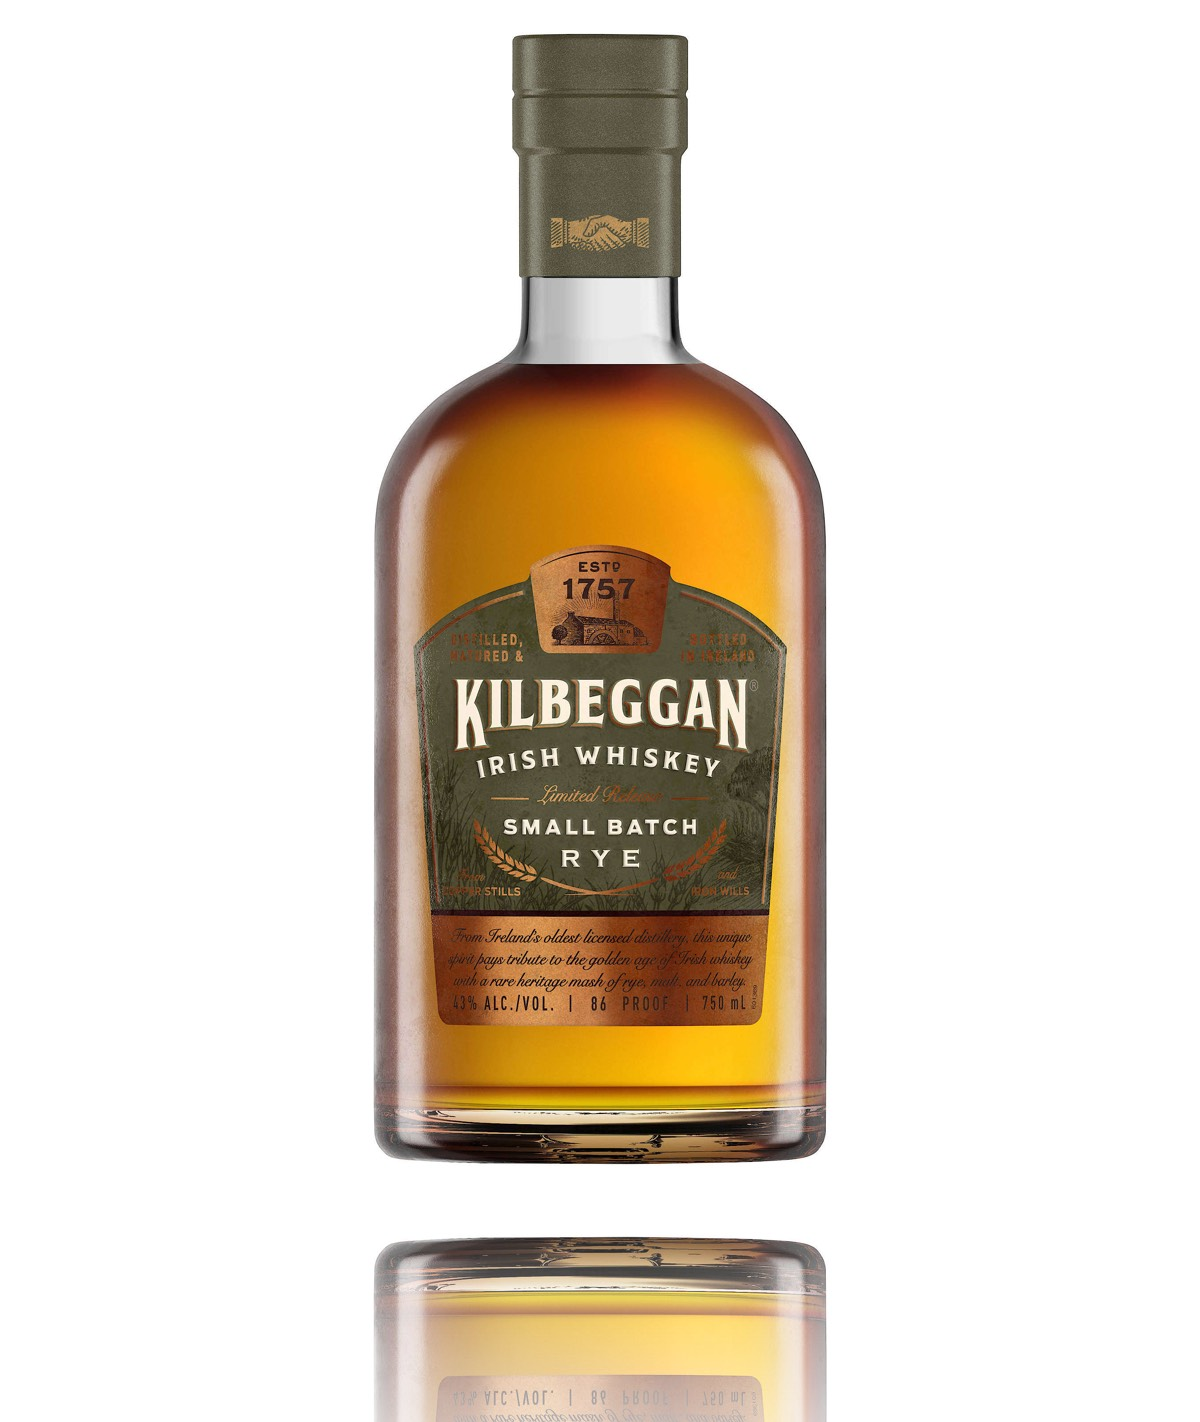 Kilbeggan Distilling Company introduces a new style of Irish Whiskey dating nearly 100 years in KilbegganÆ Small Batch Rye. This limited-edition Irish whiskey will be available in the United States in mid-November 2018 with a suggested retail price of $34.99 (43% ABV, 750ml). Photo credit: Beam Suntory.